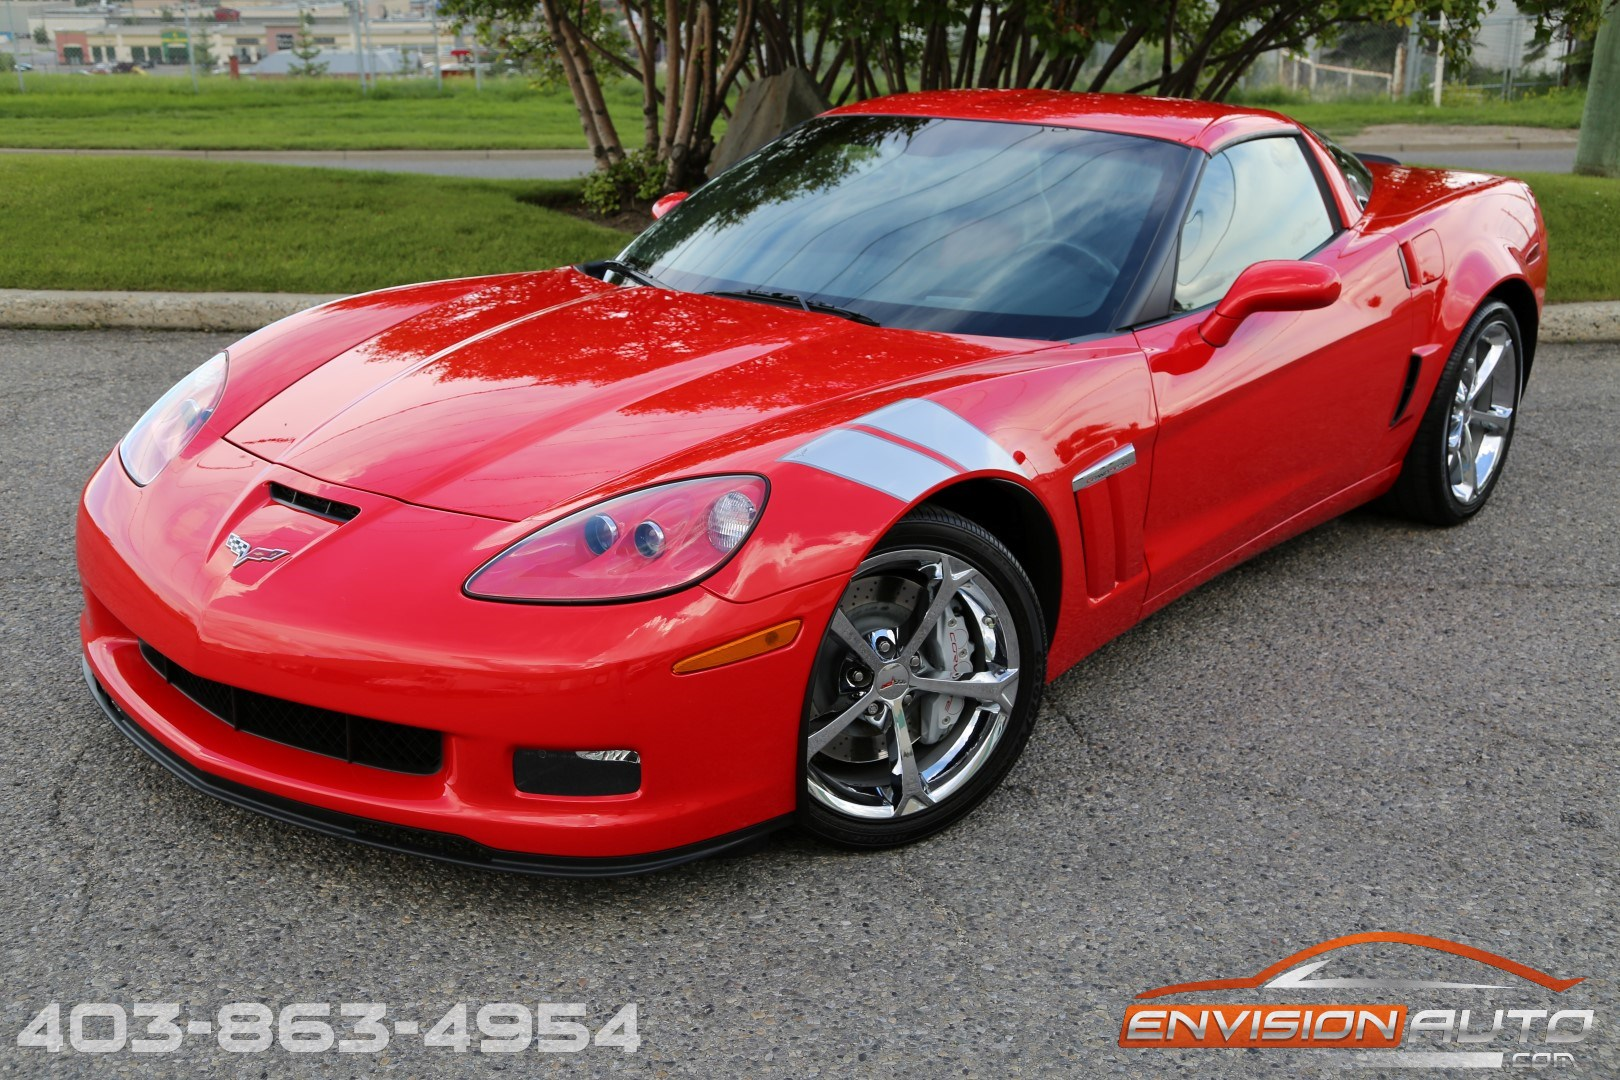 2010 chevrolet corvette grand sport coupe 1sb one local alberta owner envision auto. Black Bedroom Furniture Sets. Home Design Ideas